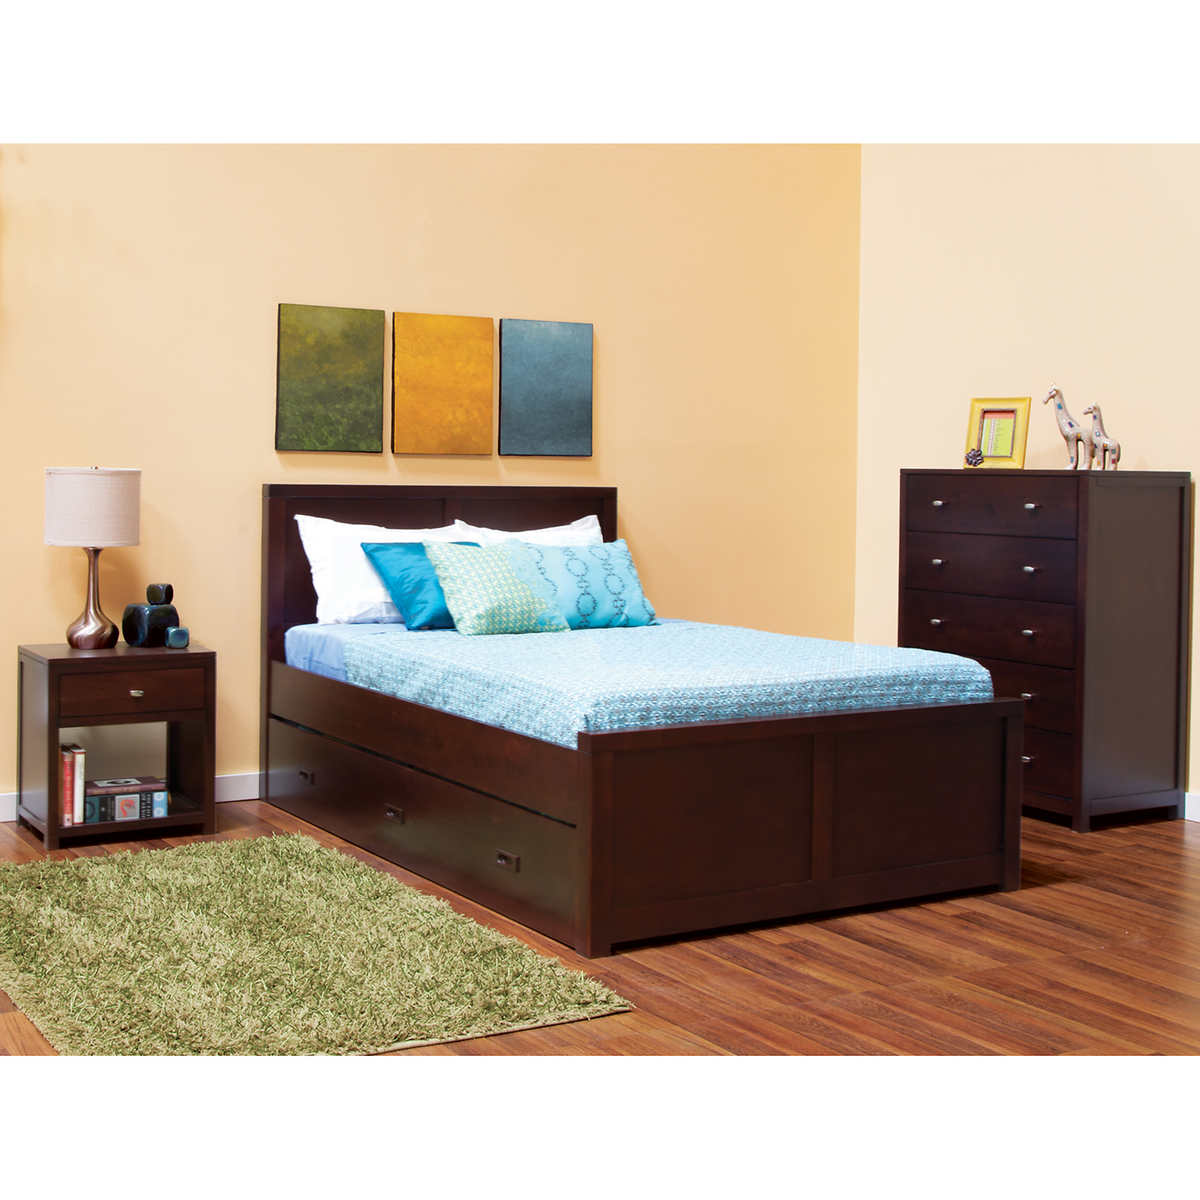 Images Of Bedroom Sets full bedroom sets | costco